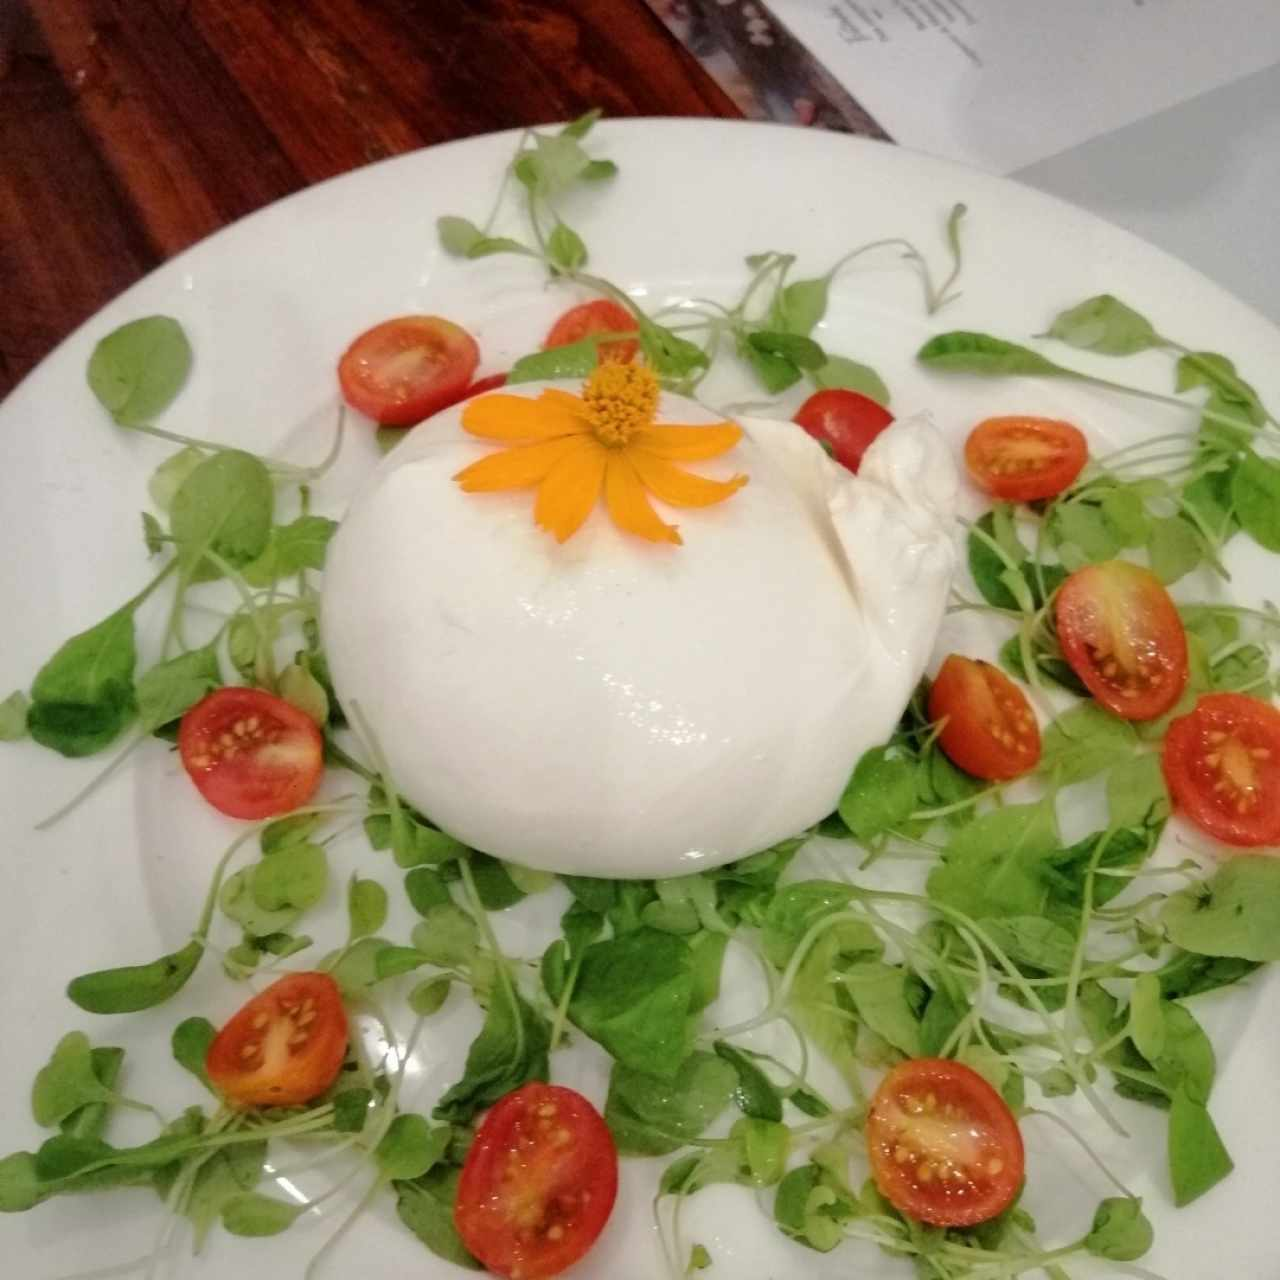 burrata italiana